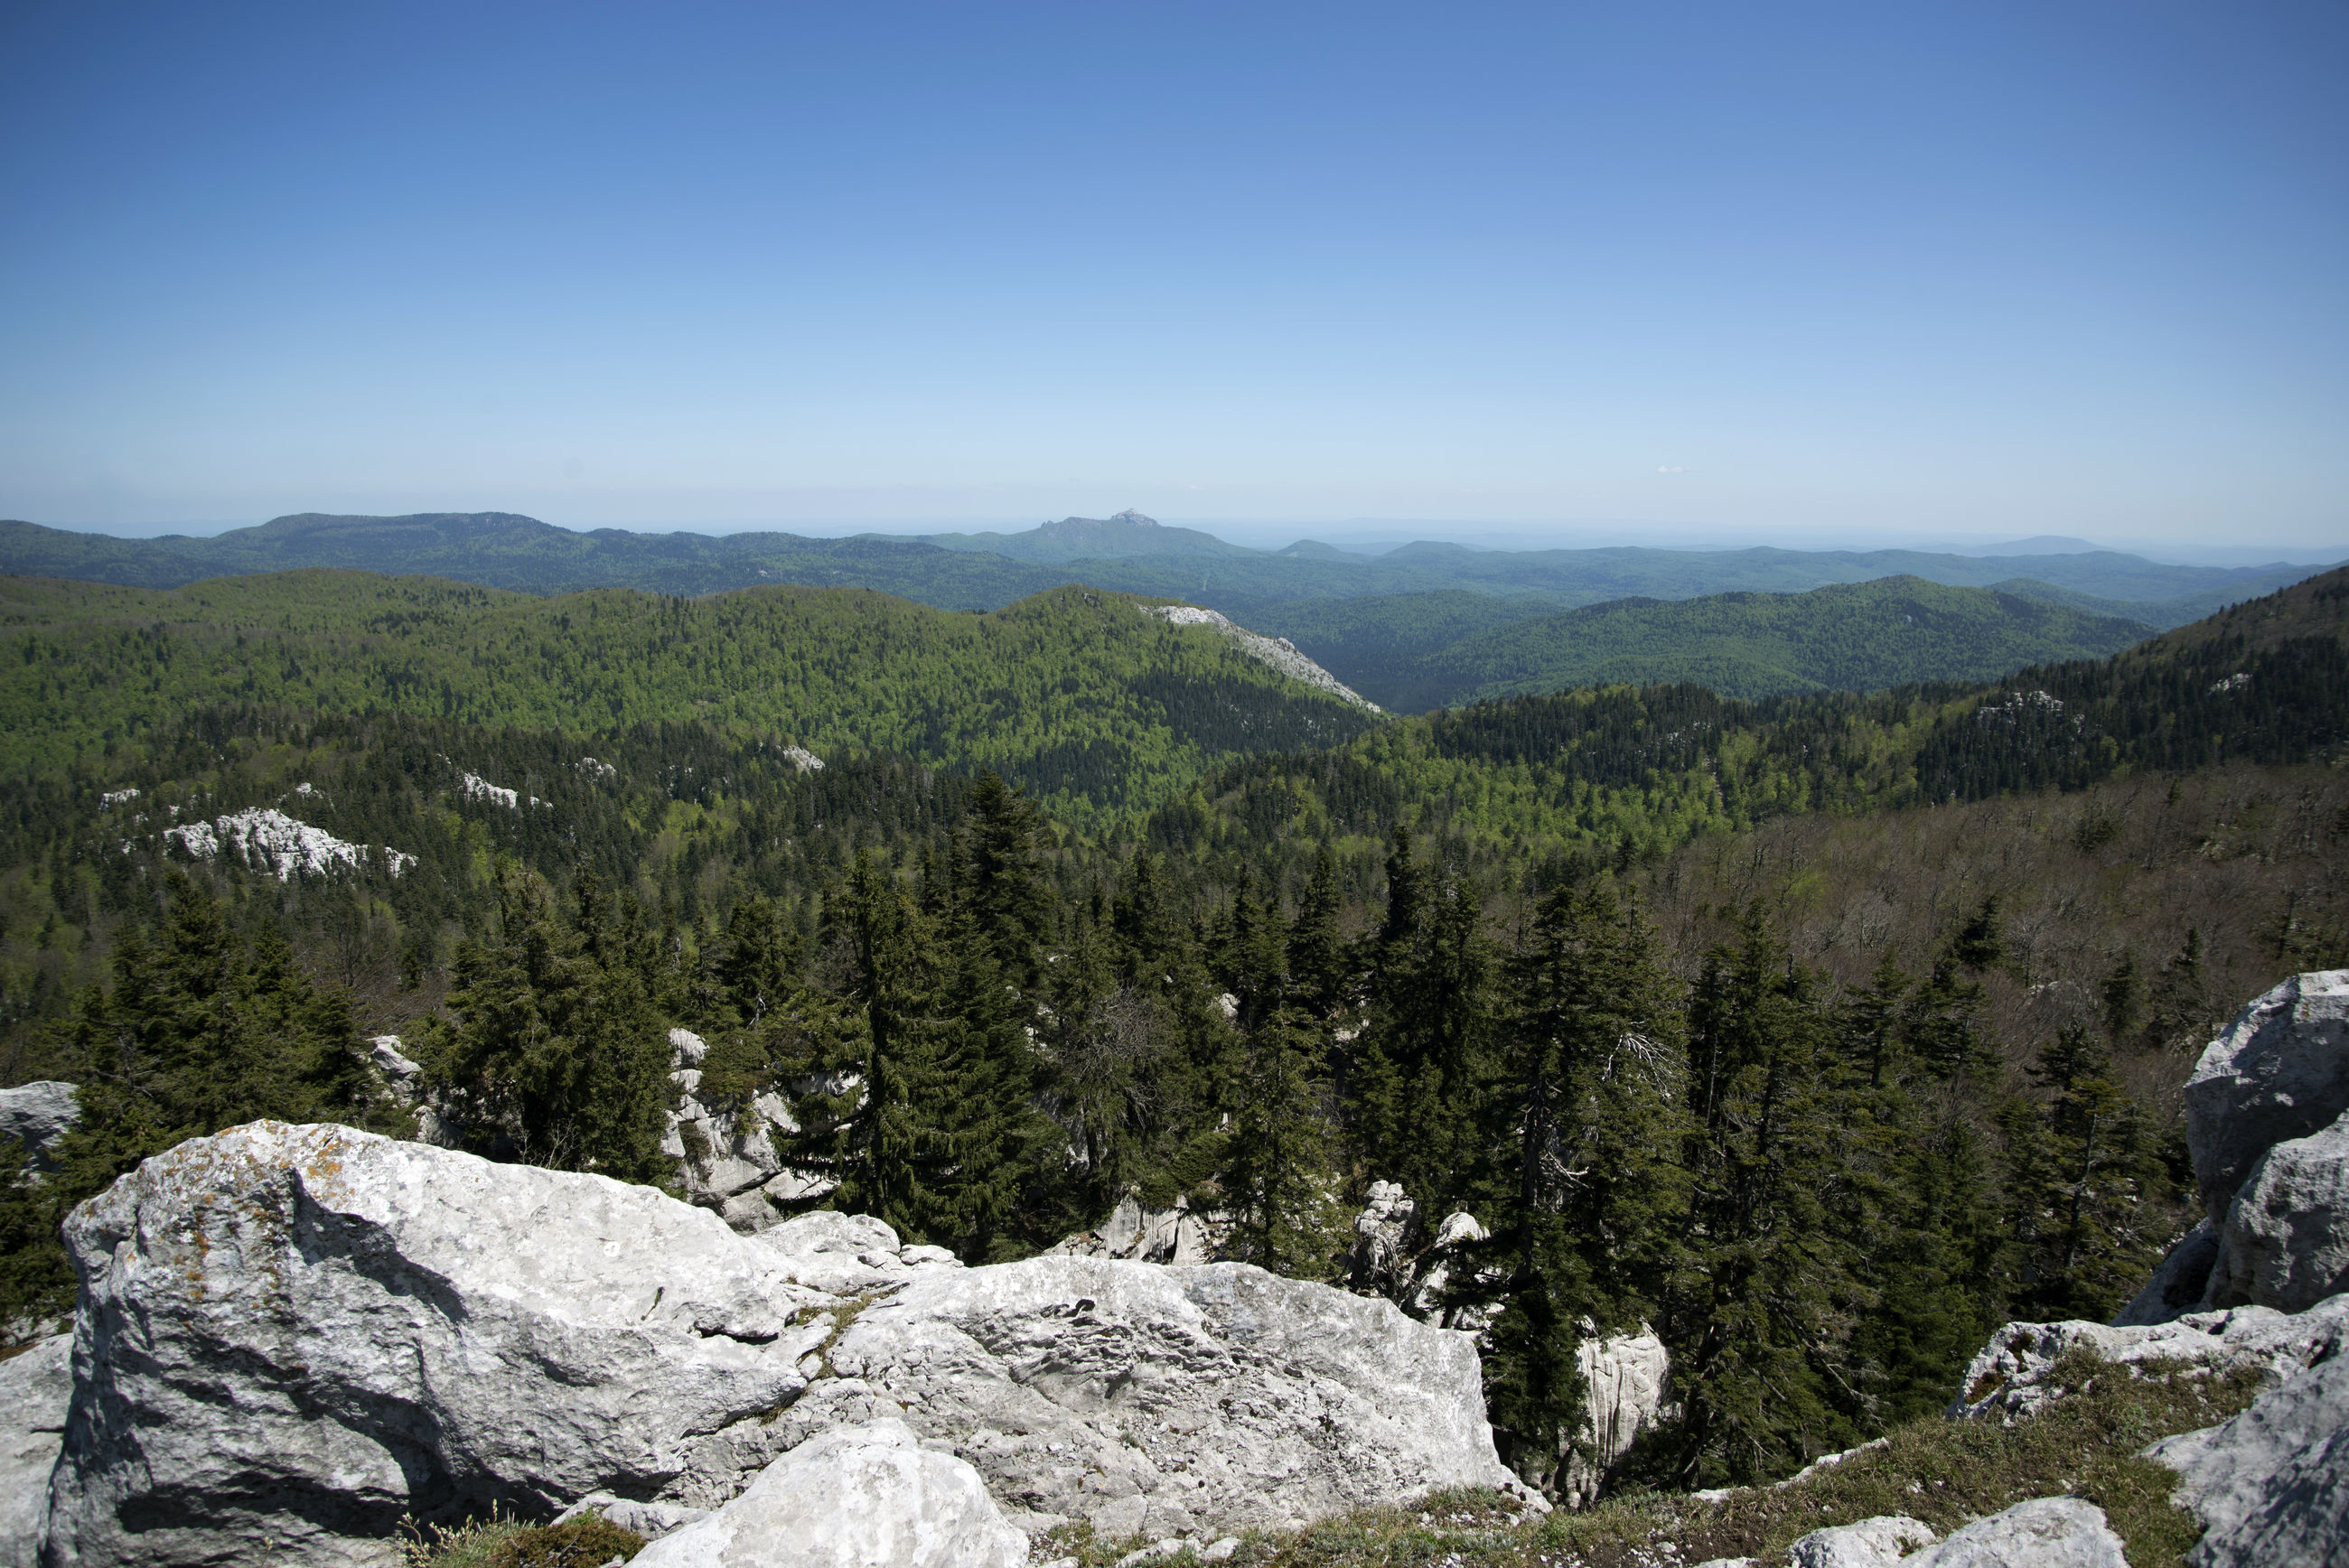 SCENIC VIEW OF LANDSCAPE AND MOUNTAINS AGAINST CLEAR SKY